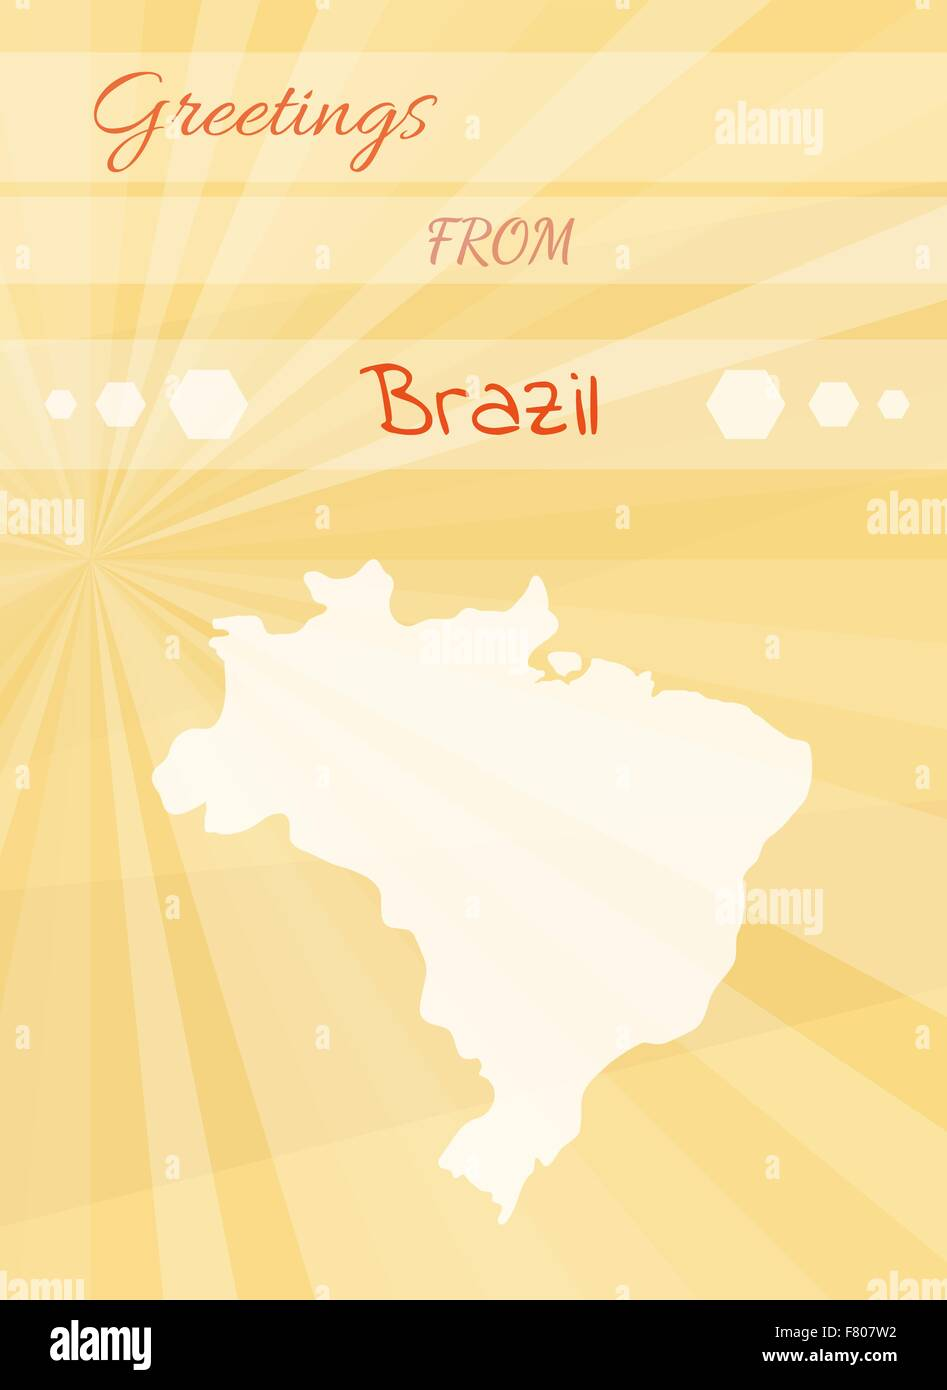 Greetings from brazil stock vector art illustration vector image greetings from brazil m4hsunfo